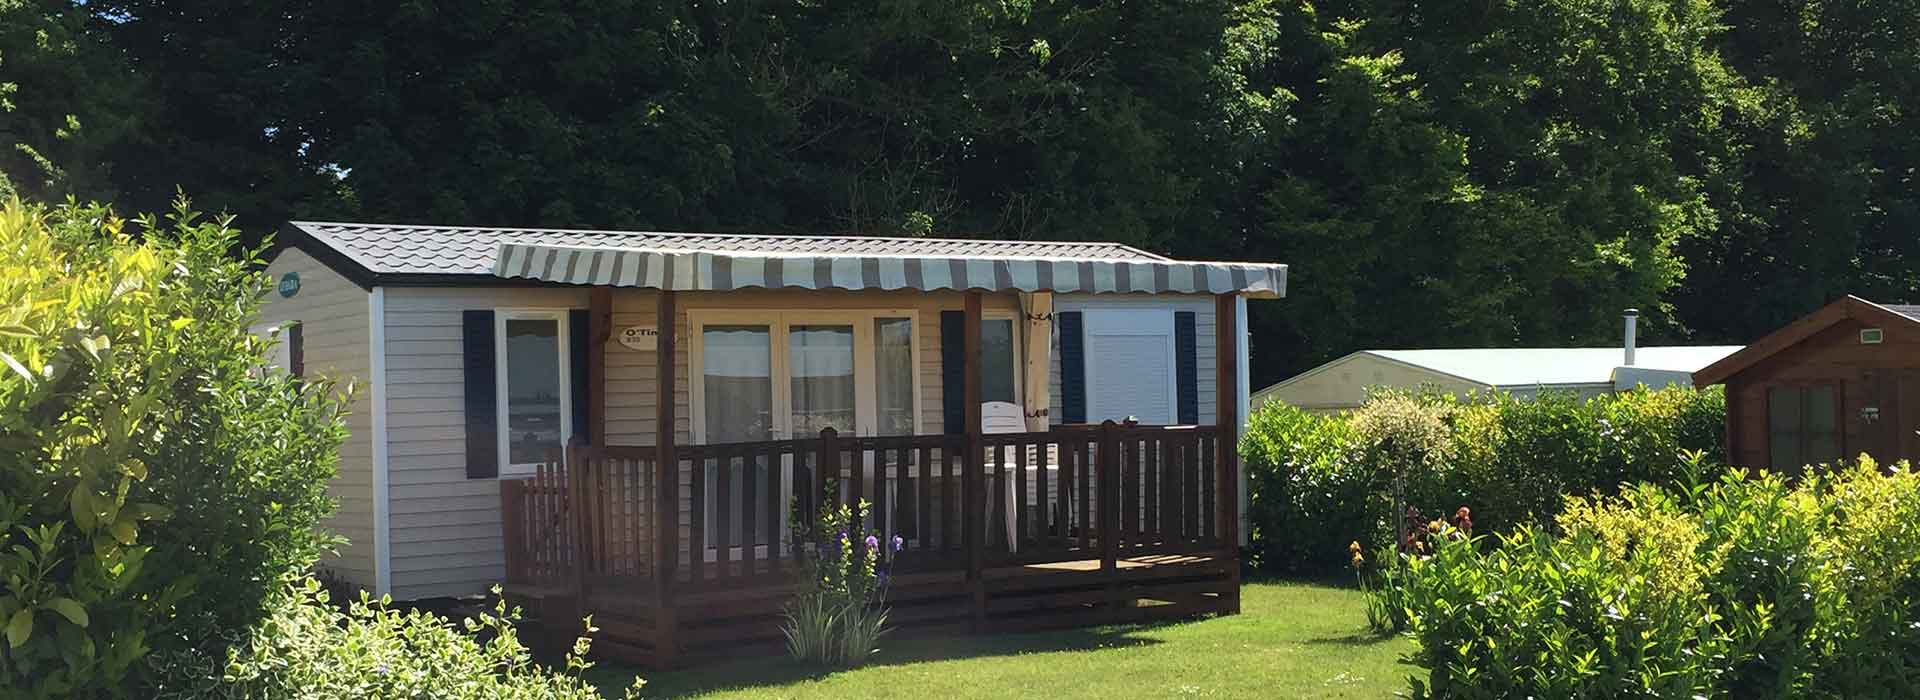 mobil home a vendre port le grand